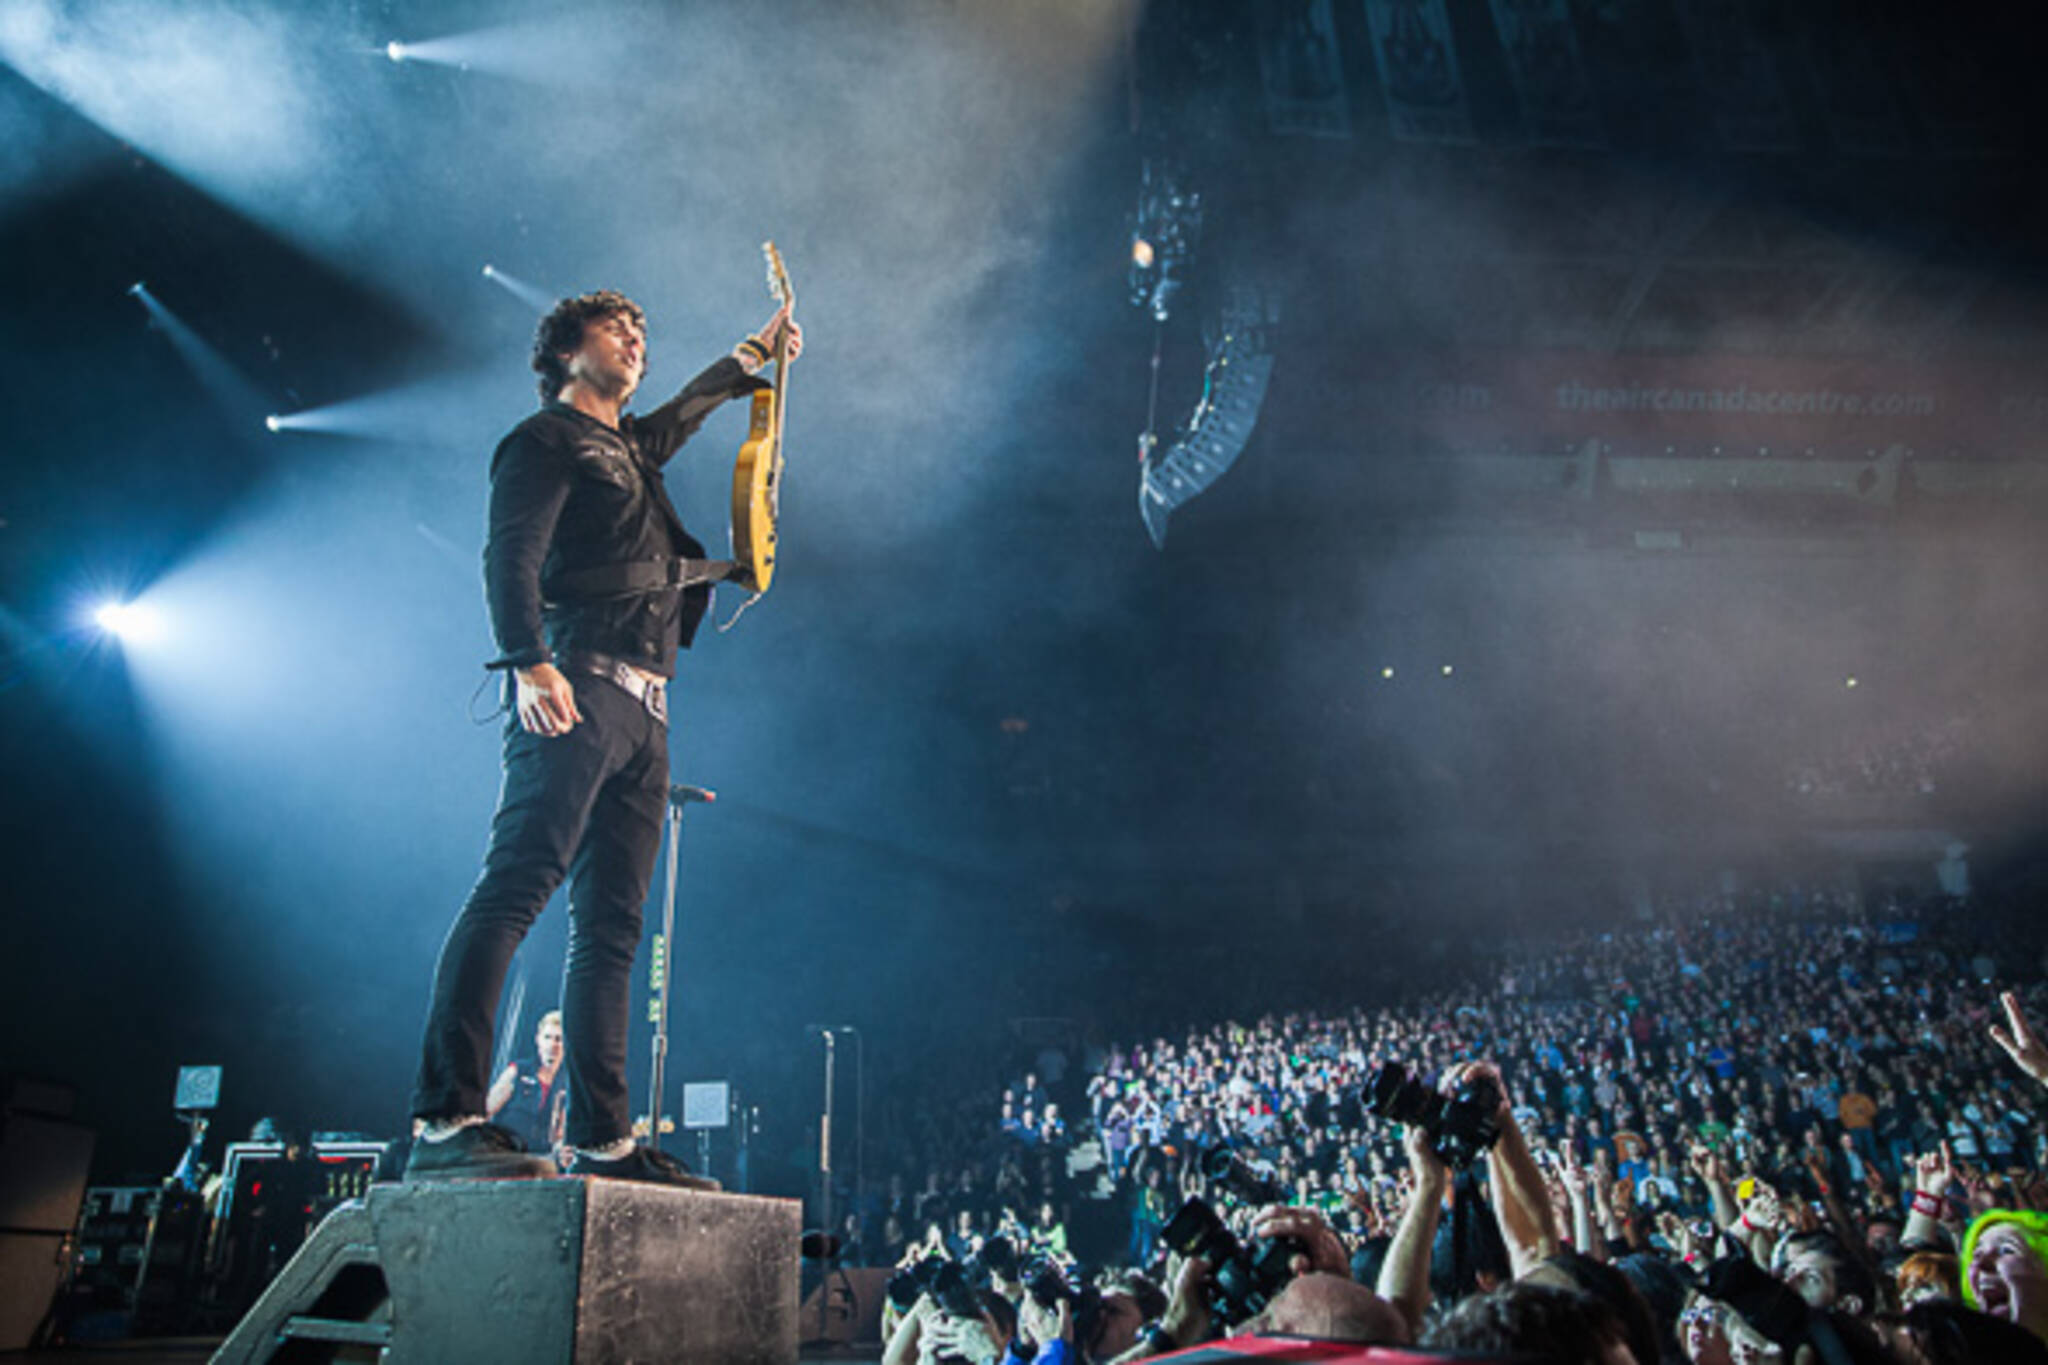 green day prove popular as ever at sold out acc show. Black Bedroom Furniture Sets. Home Design Ideas